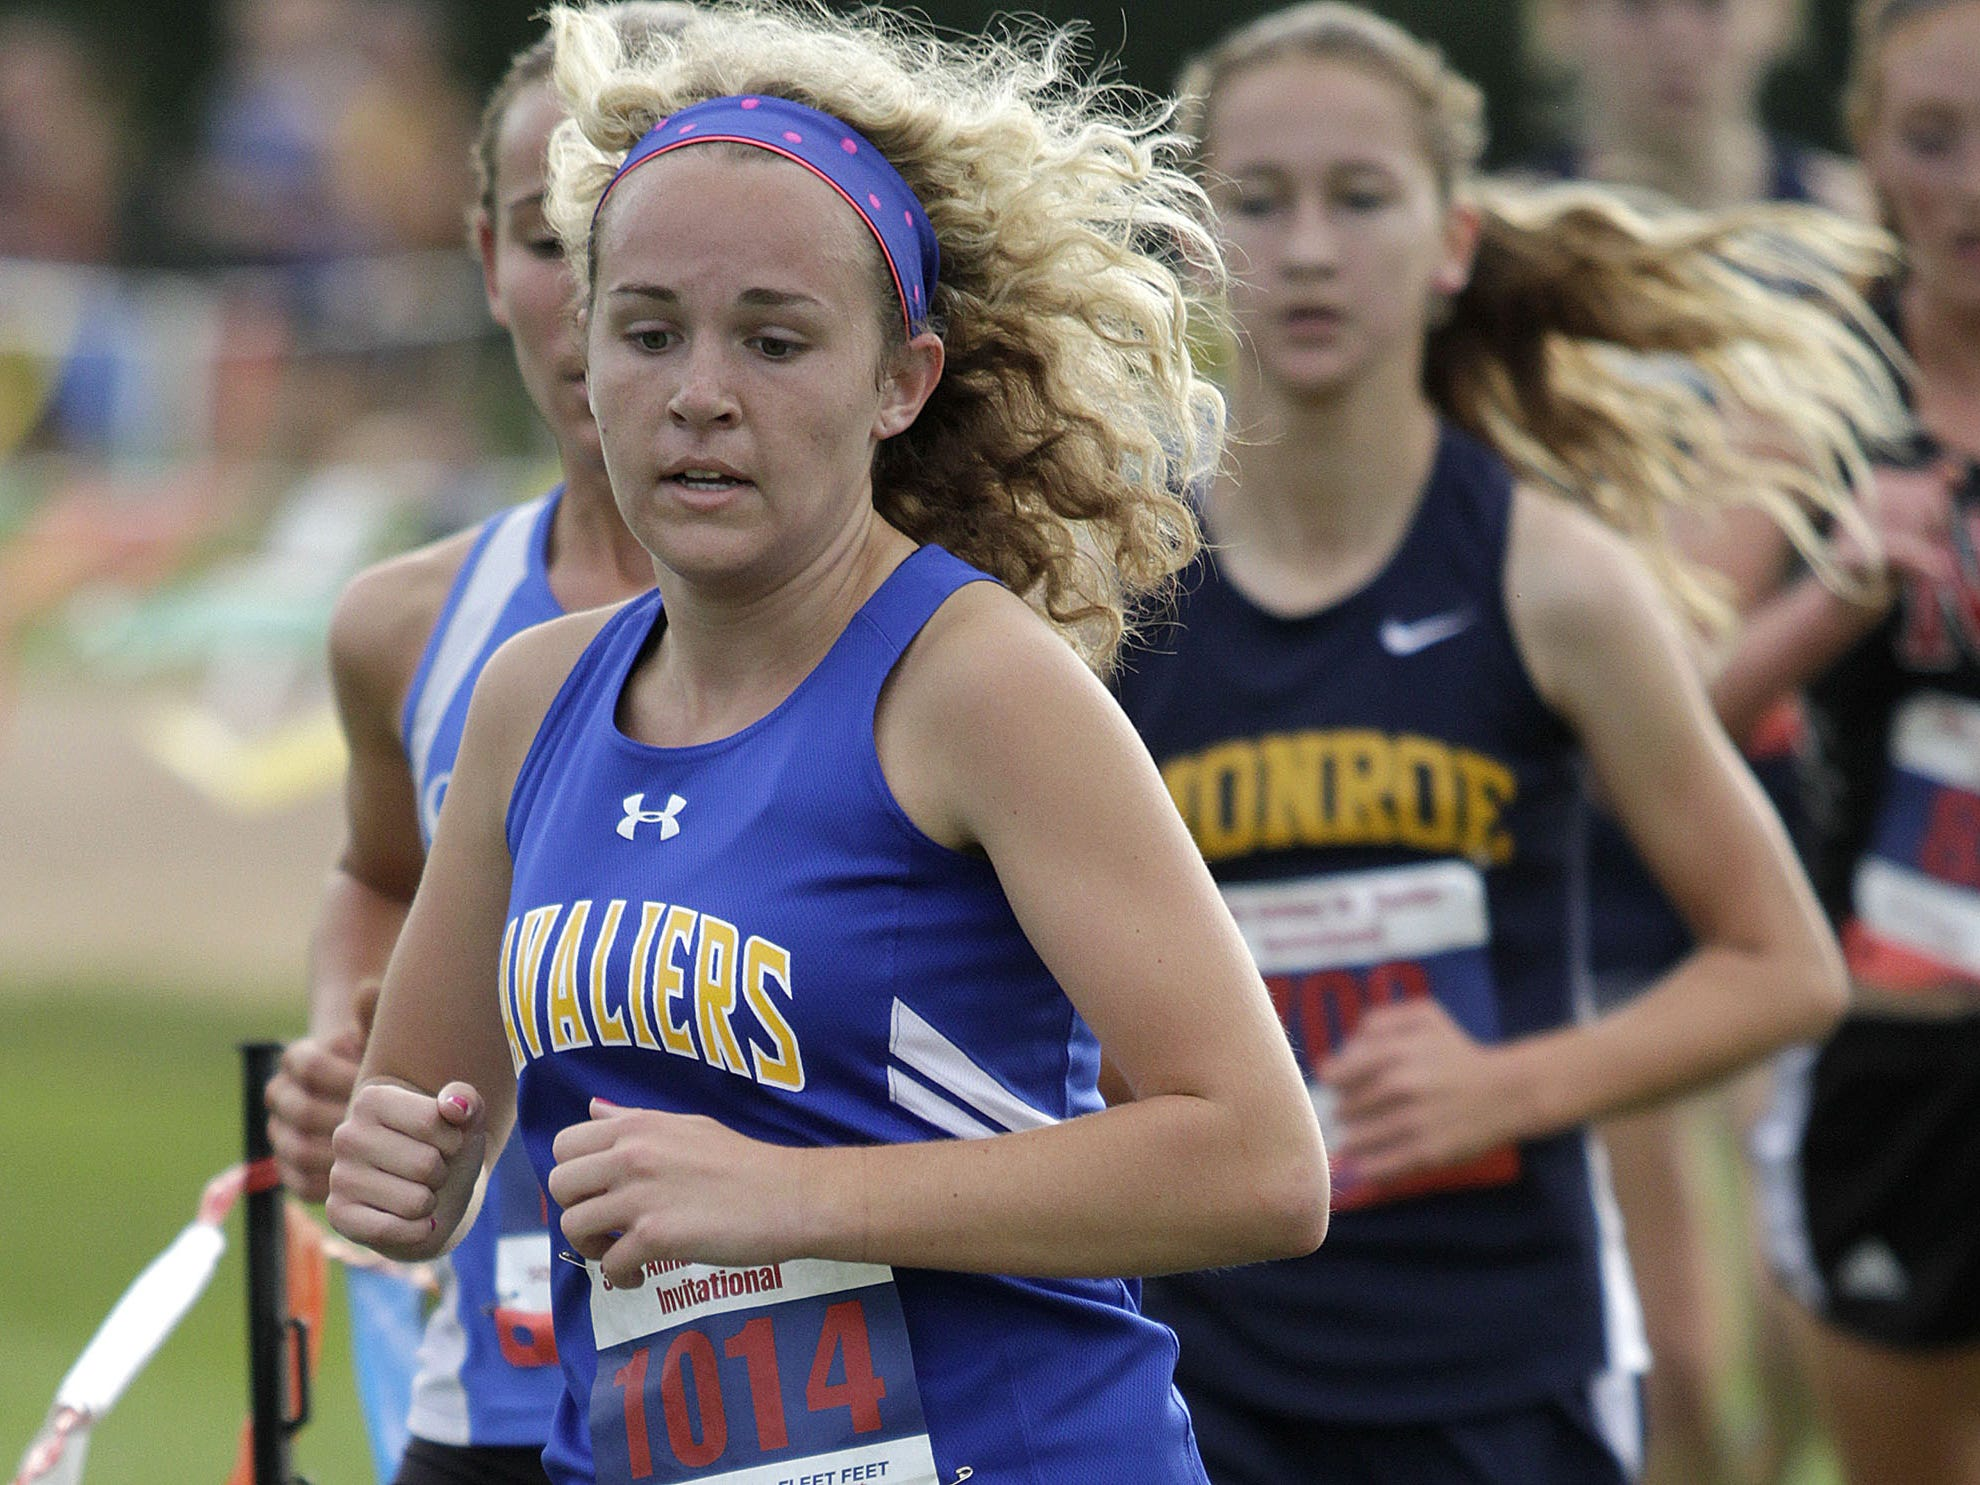 Kansas Greenwell of Purcell Marian will try to turn a successful cross country season into a productive spring on the track for coach Fallon Lane.